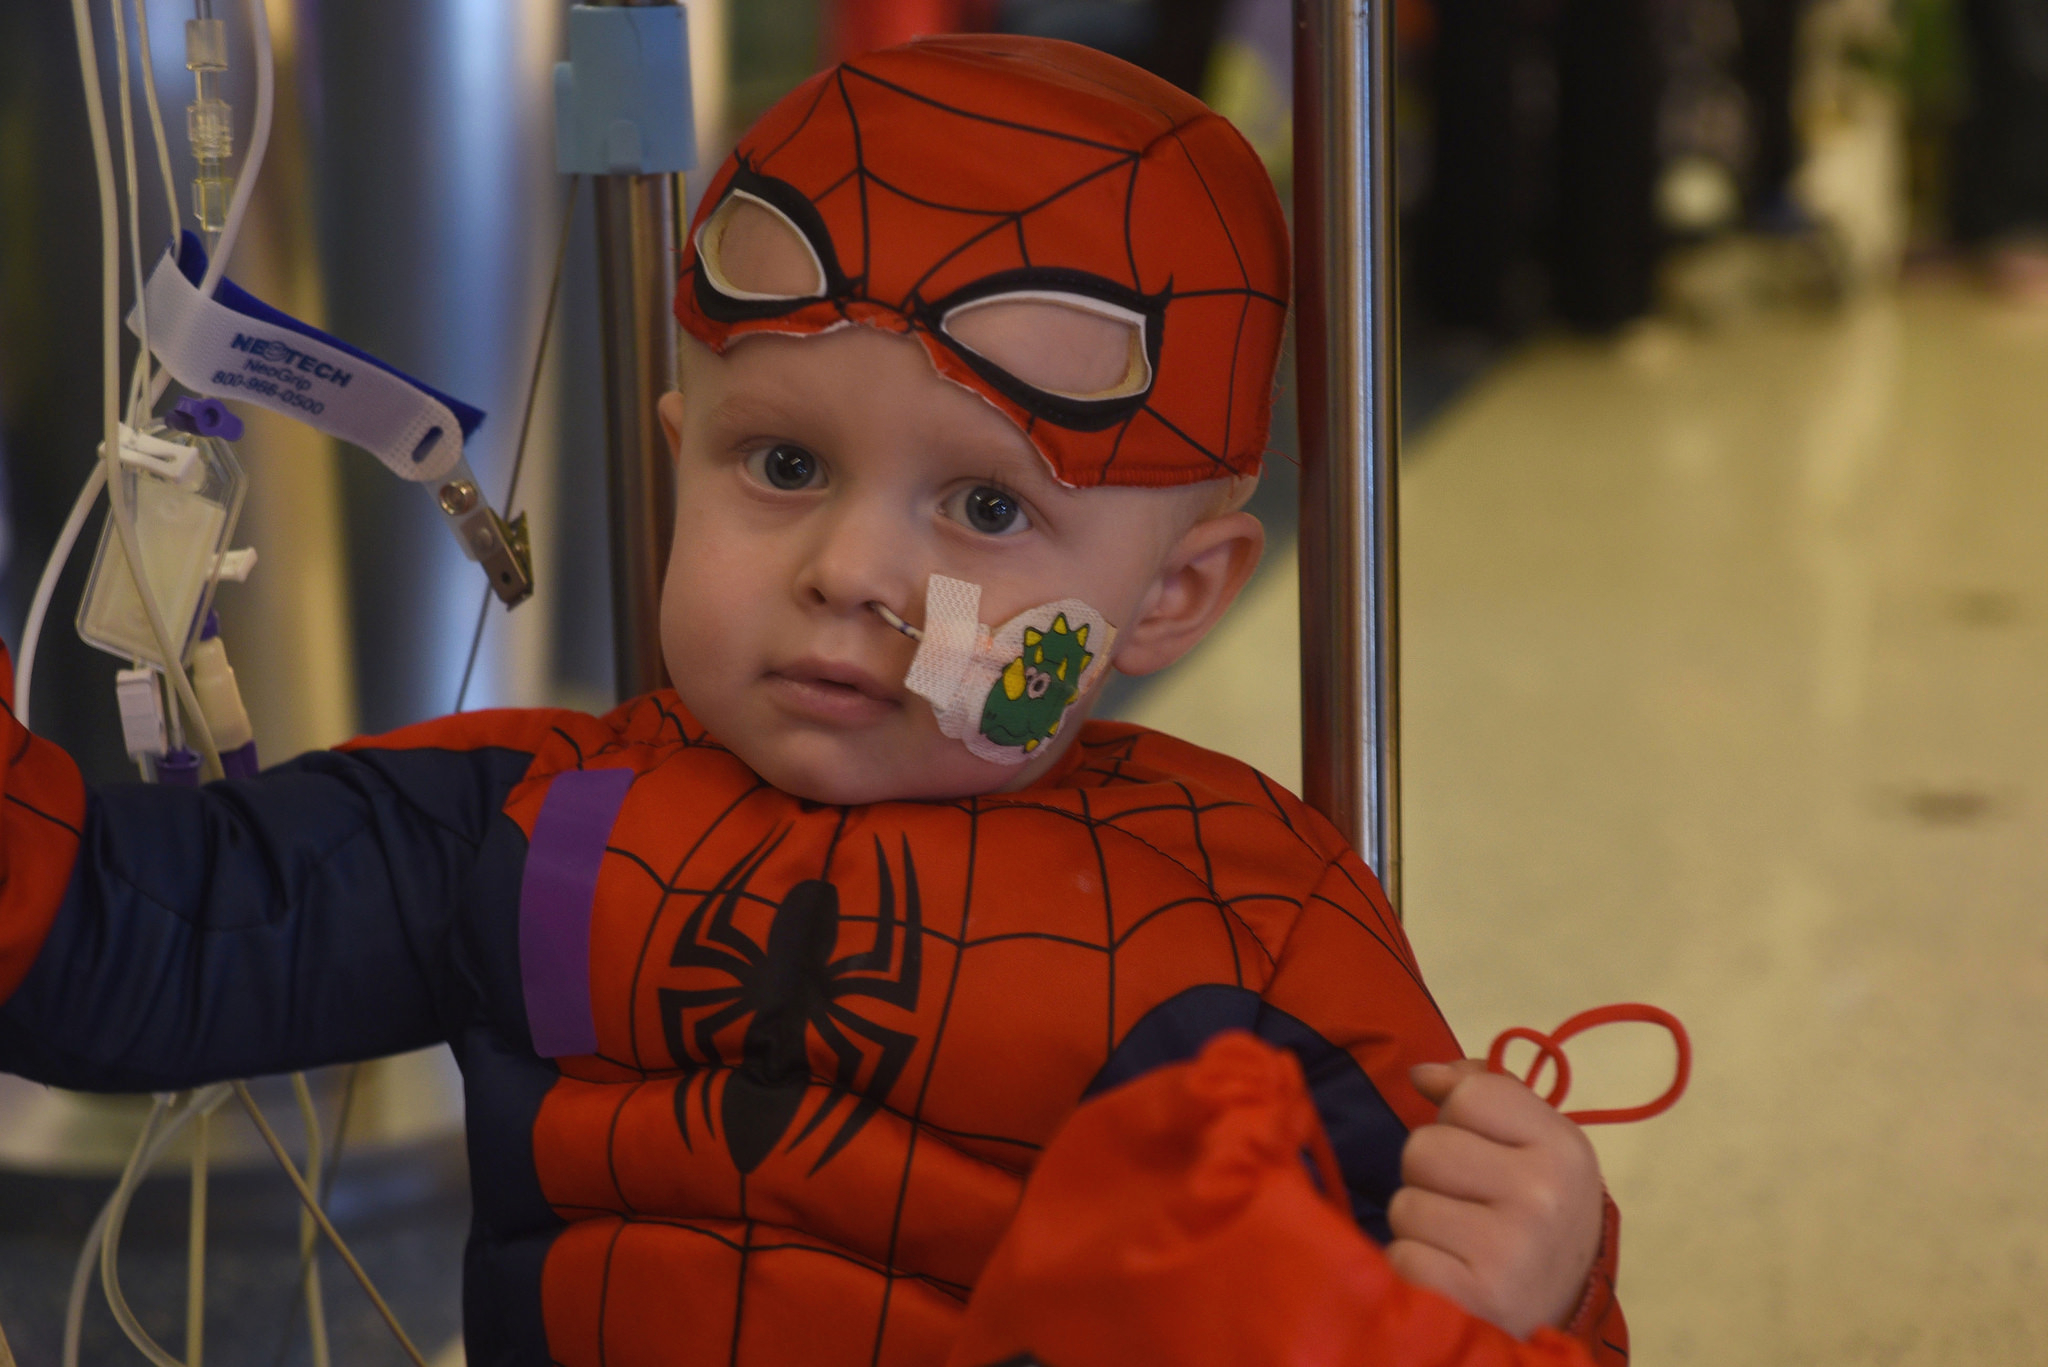 A young child in a Spiderman costume poses for a photo while sitting on the base of an IV pole. Some IV cords are in the background. The child holds a red bag with one hand.